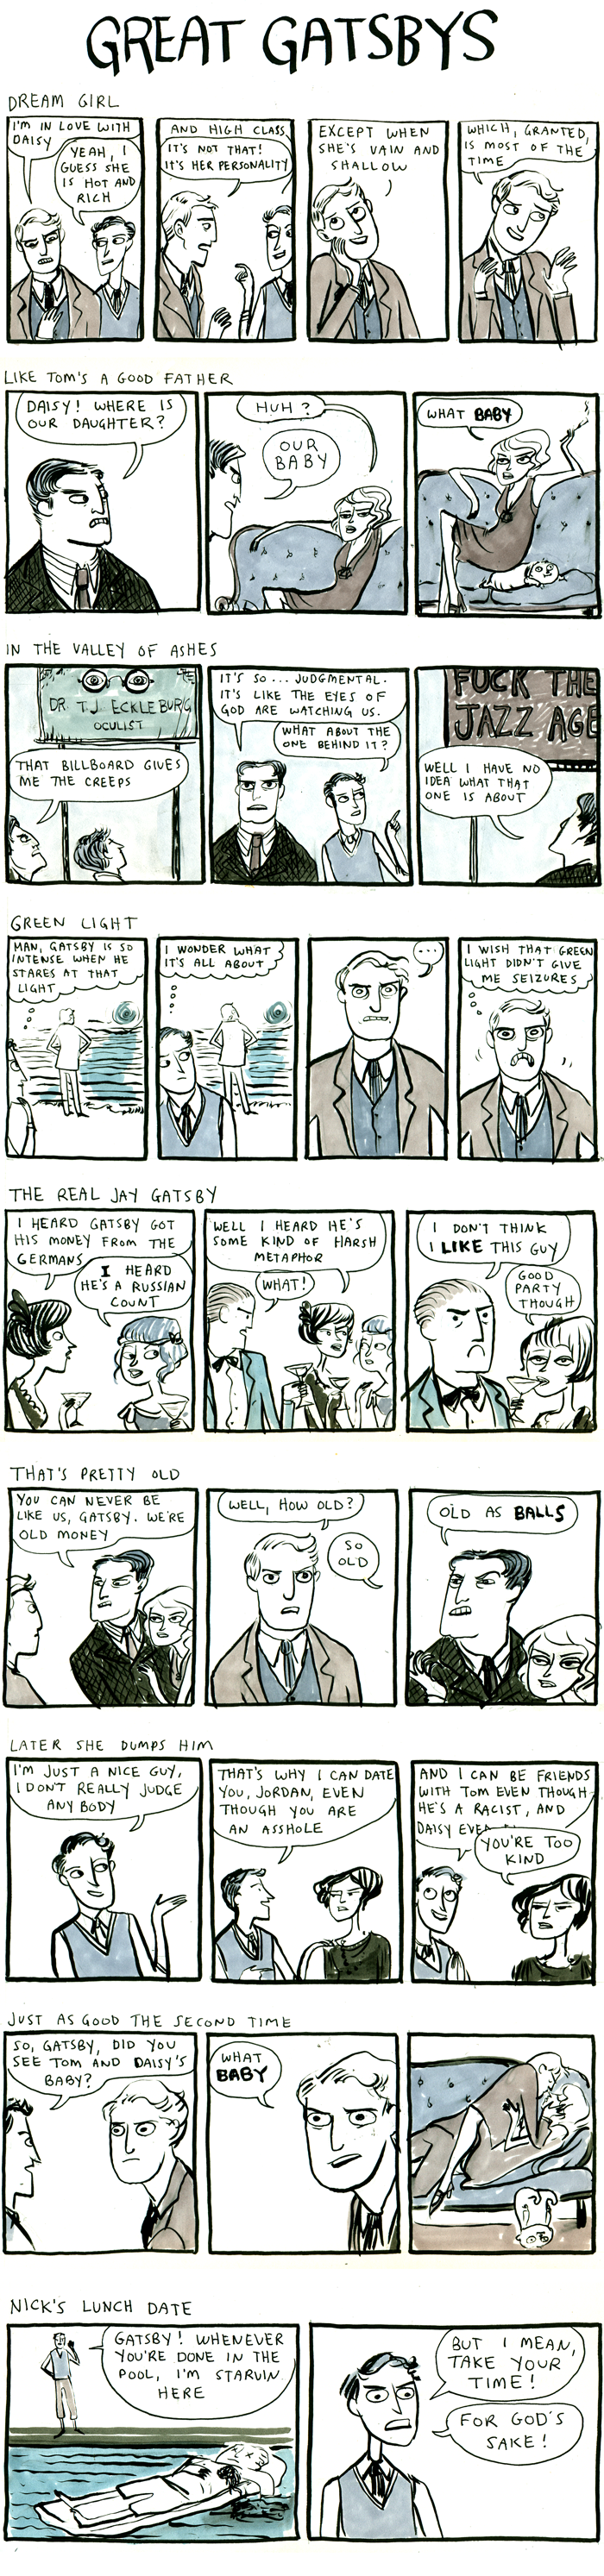 The Avarage Gatsby. This is from Hark! A Vagrant, possibly my favorite comic out there... Good post, old sport.